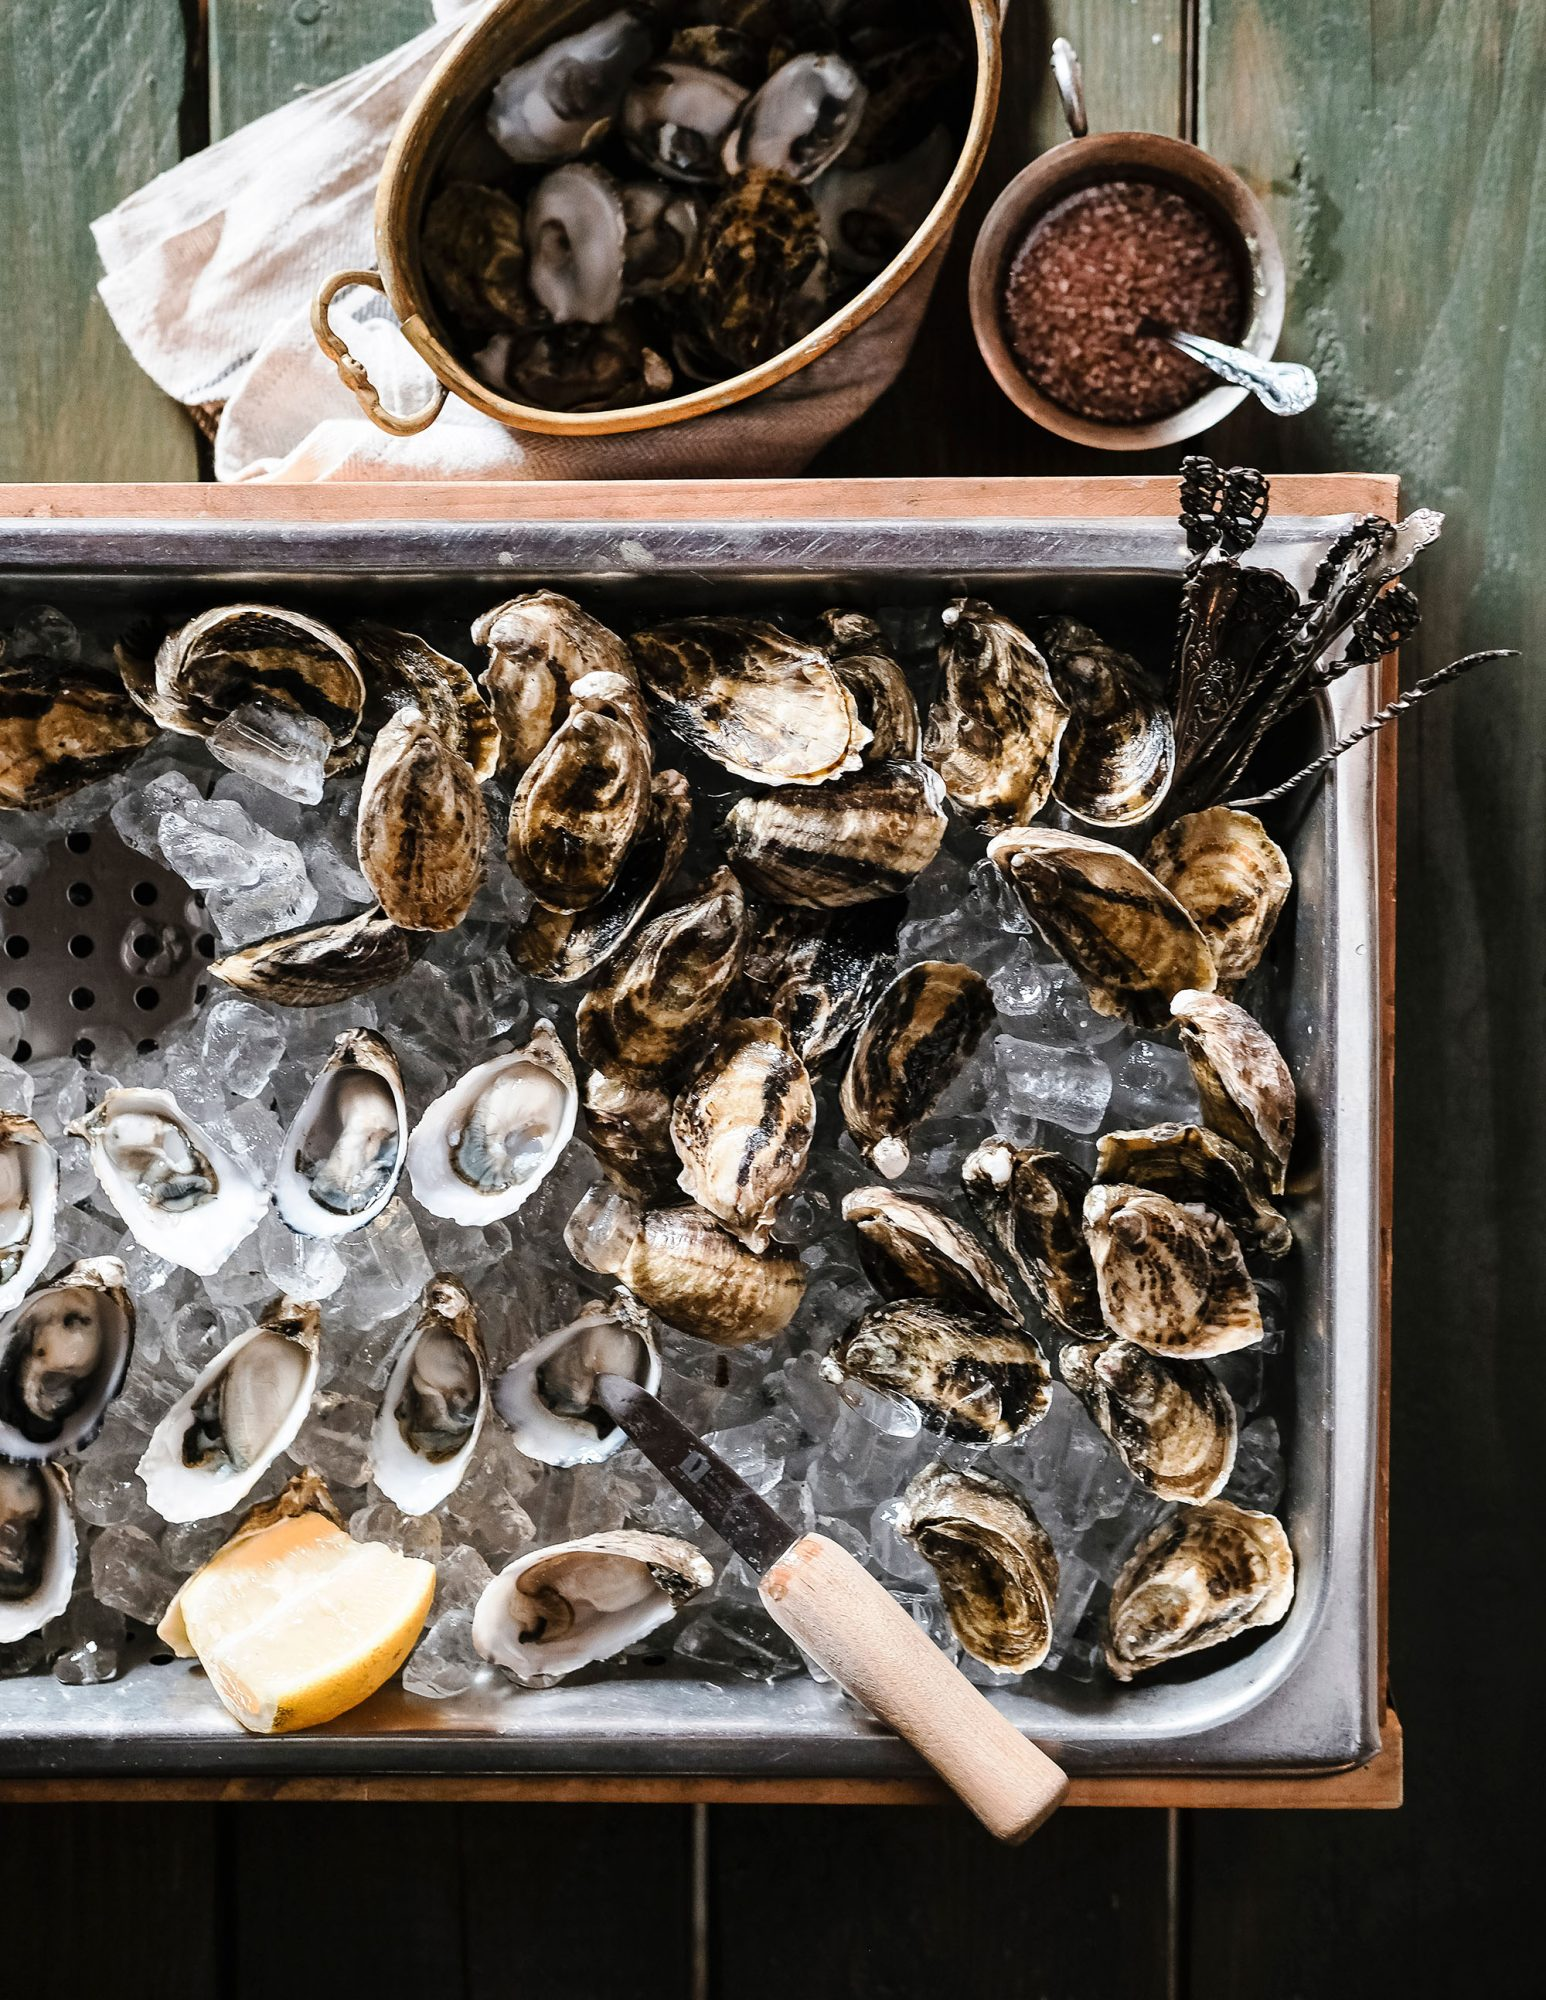 Oysters with Ginger-Shallot Mignonette